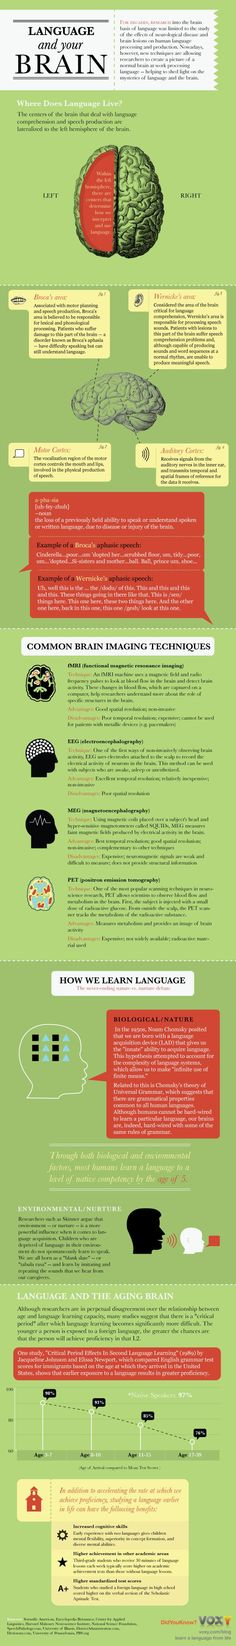 Language and Your Brain Infographic #appsychology